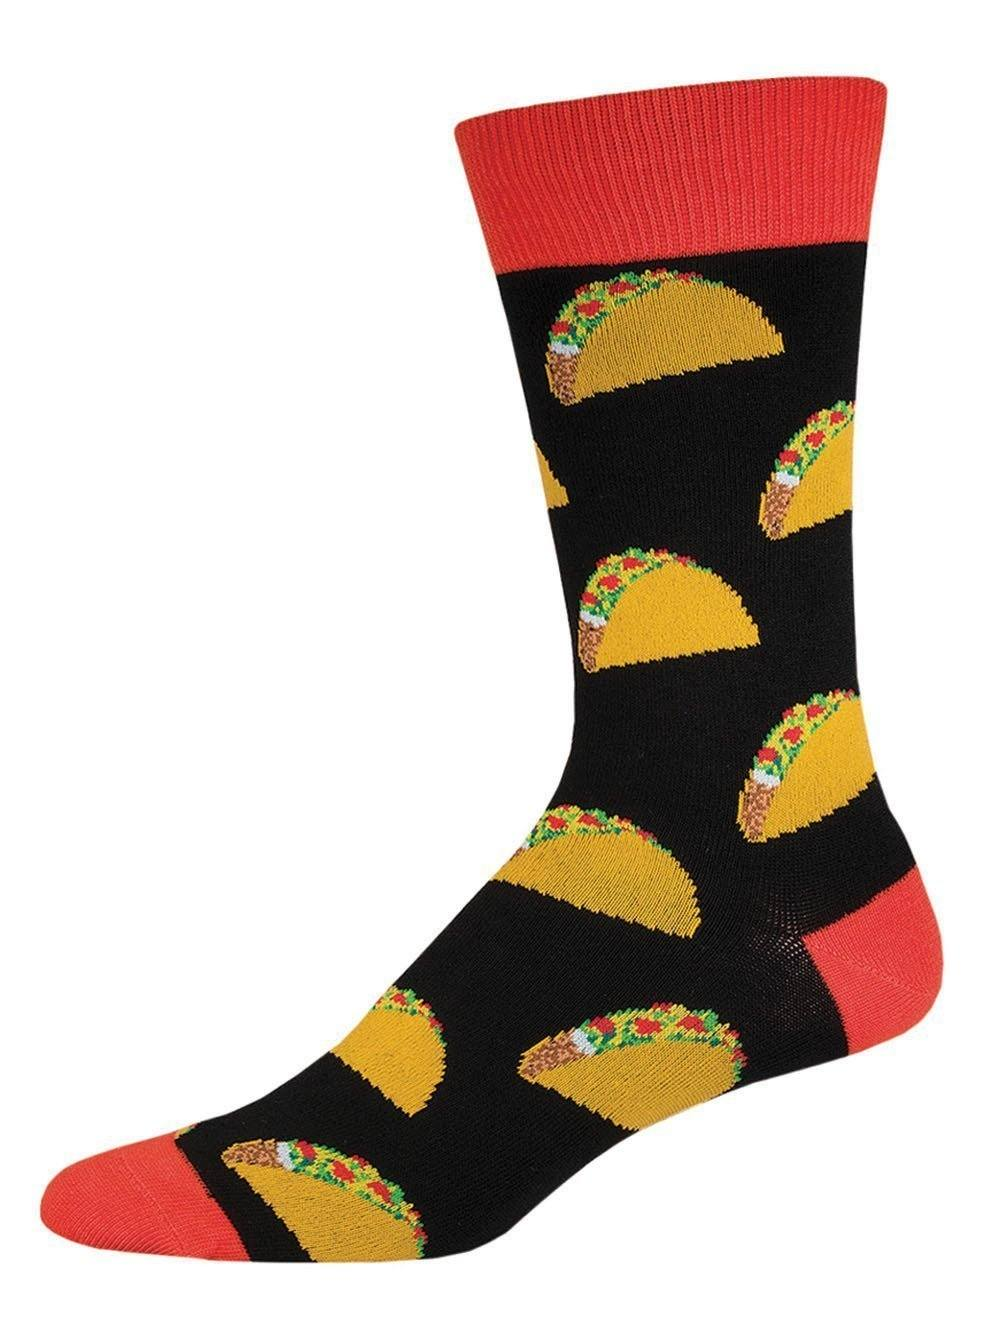 Socksmith - Tacos Crew Socks | Men's - Knock Your Socks Off